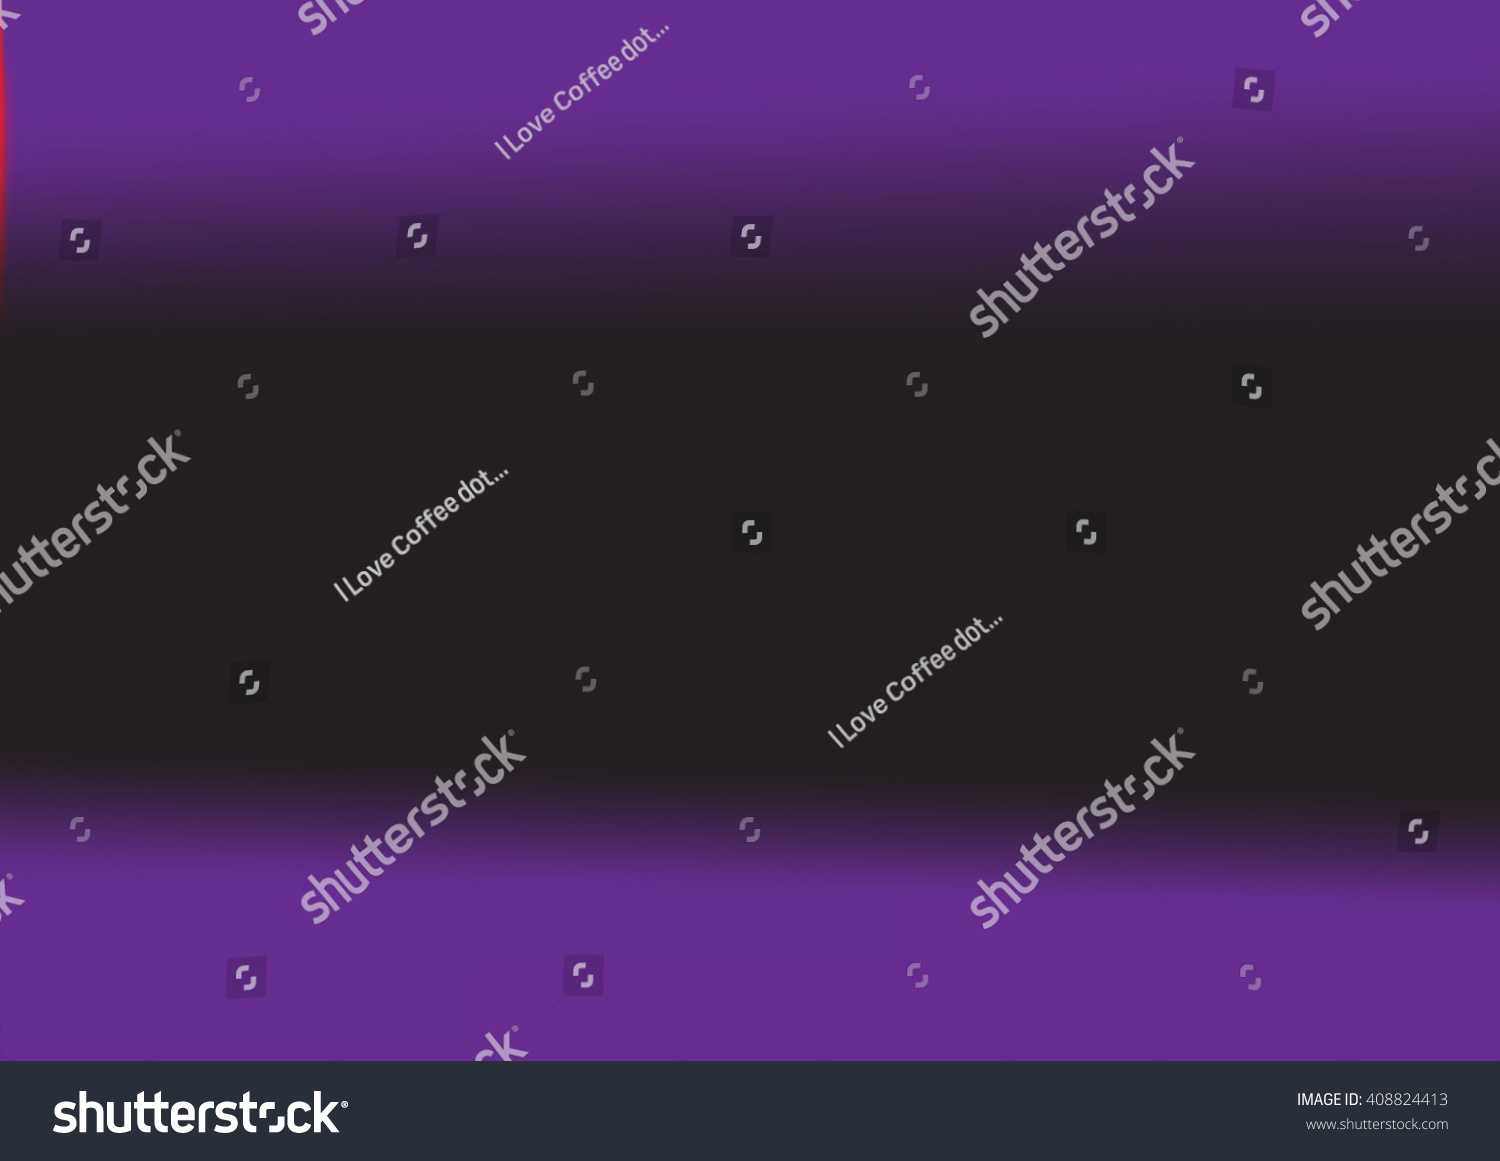 website colors neon : Abstract Blurred Background With Neon Pleasant Colors Abstract Black Purple Background Smooth Gradient Texture